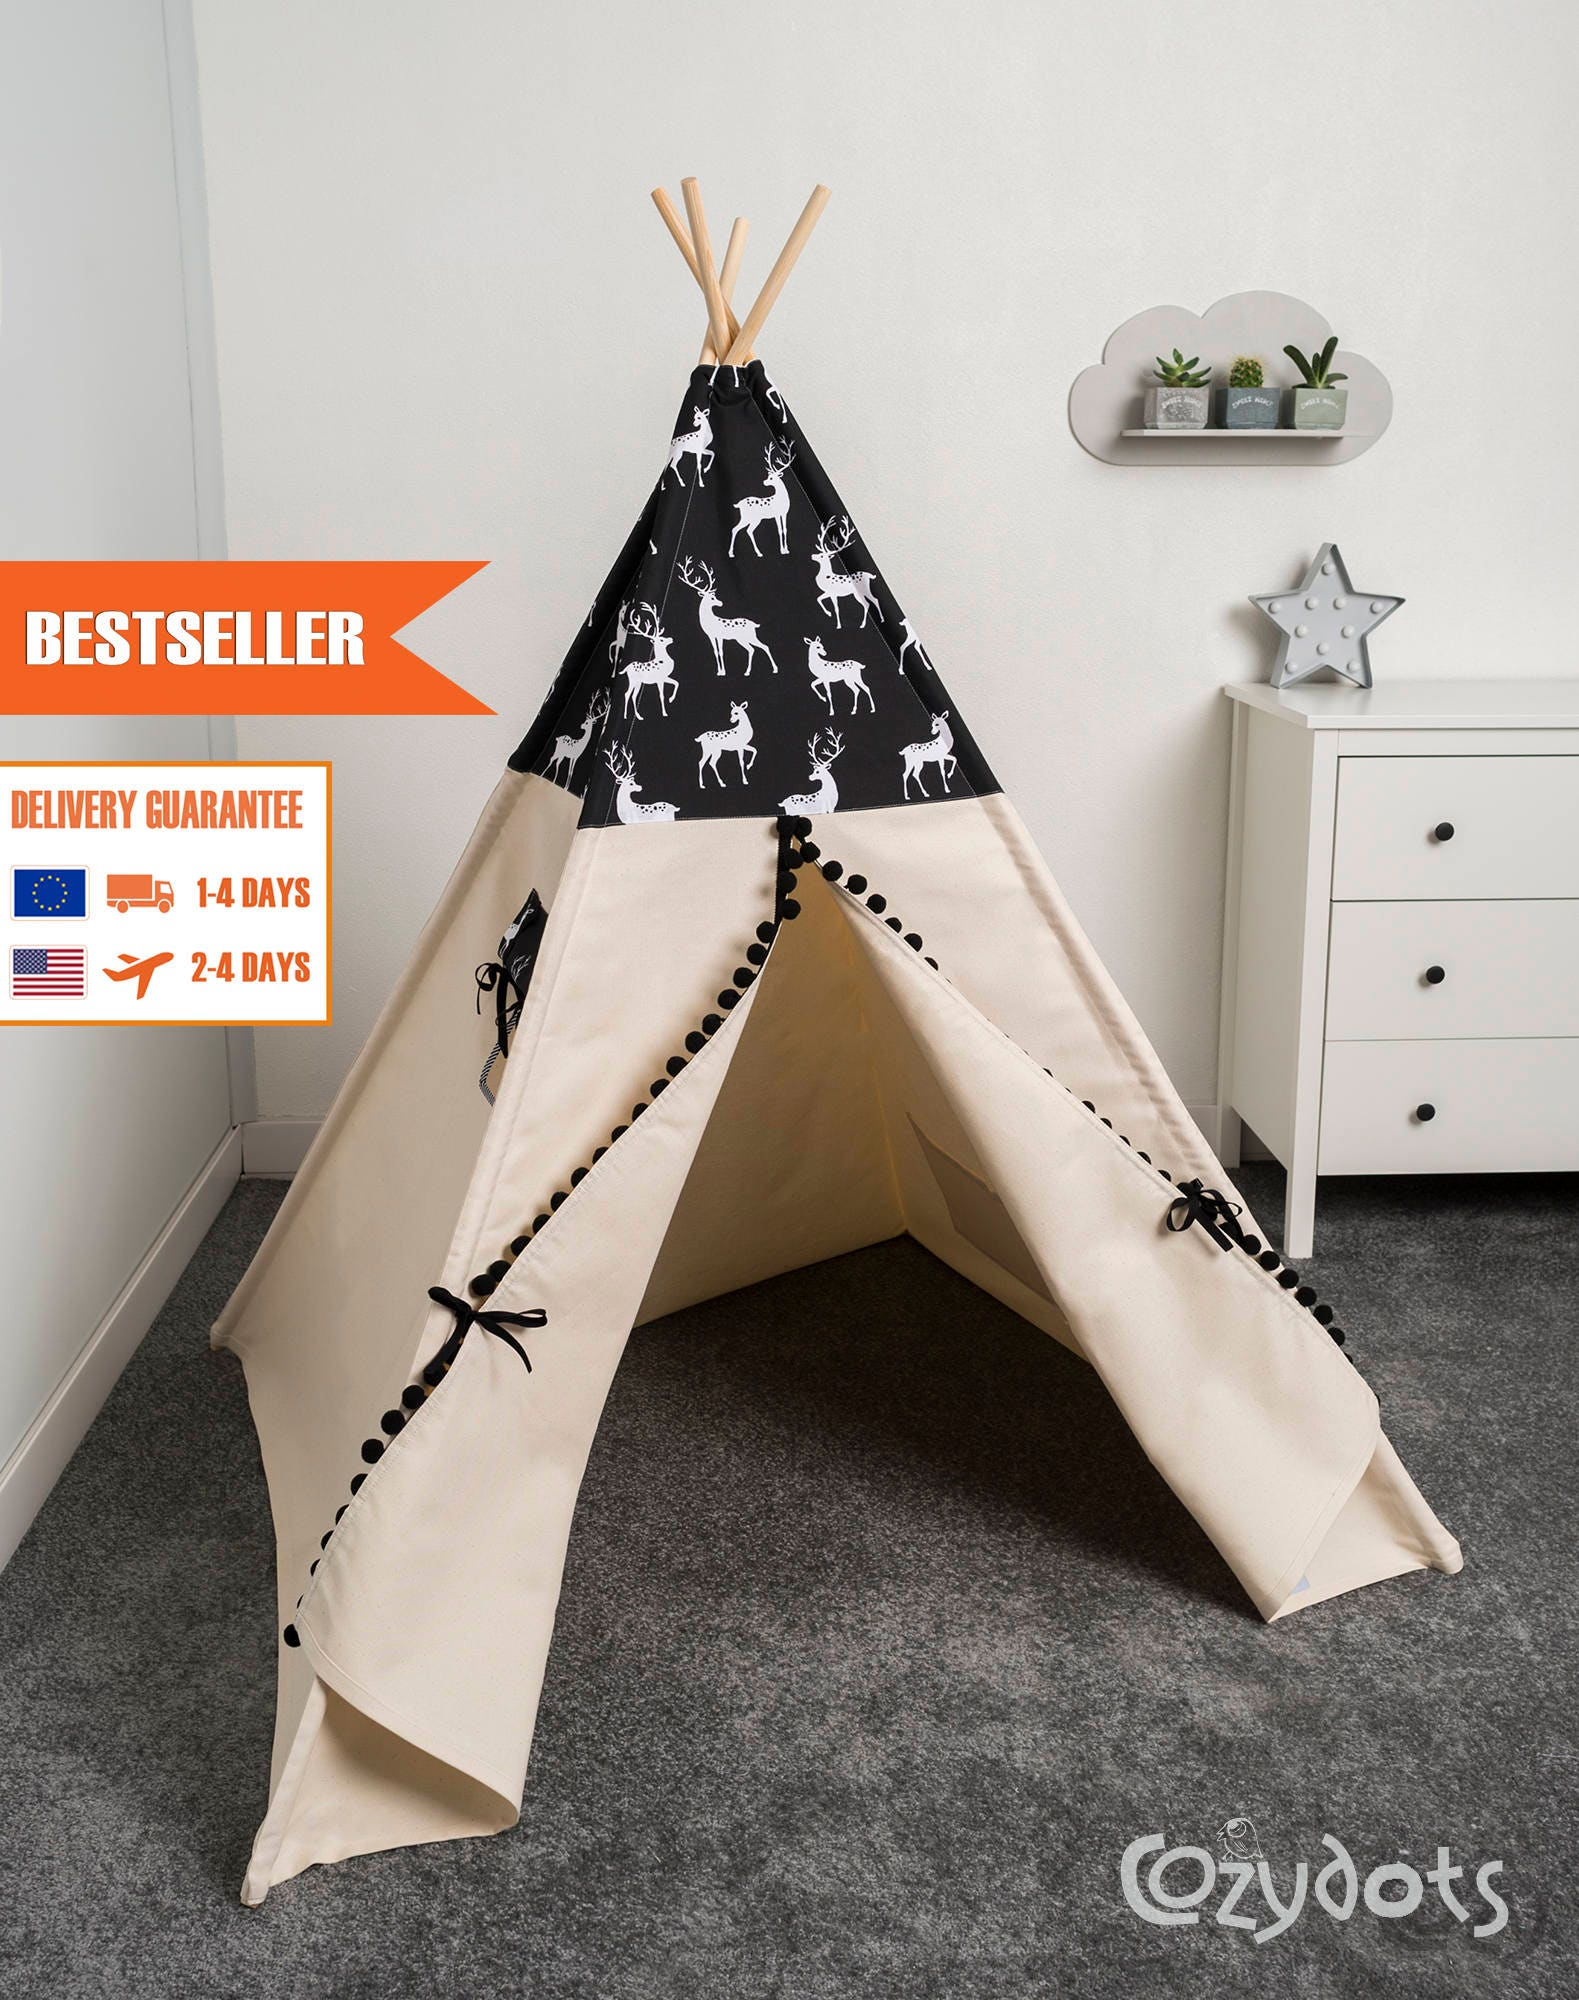 tipi enfant tente tipi tente indienne tente teepee tipi etsy. Black Bedroom Furniture Sets. Home Design Ideas